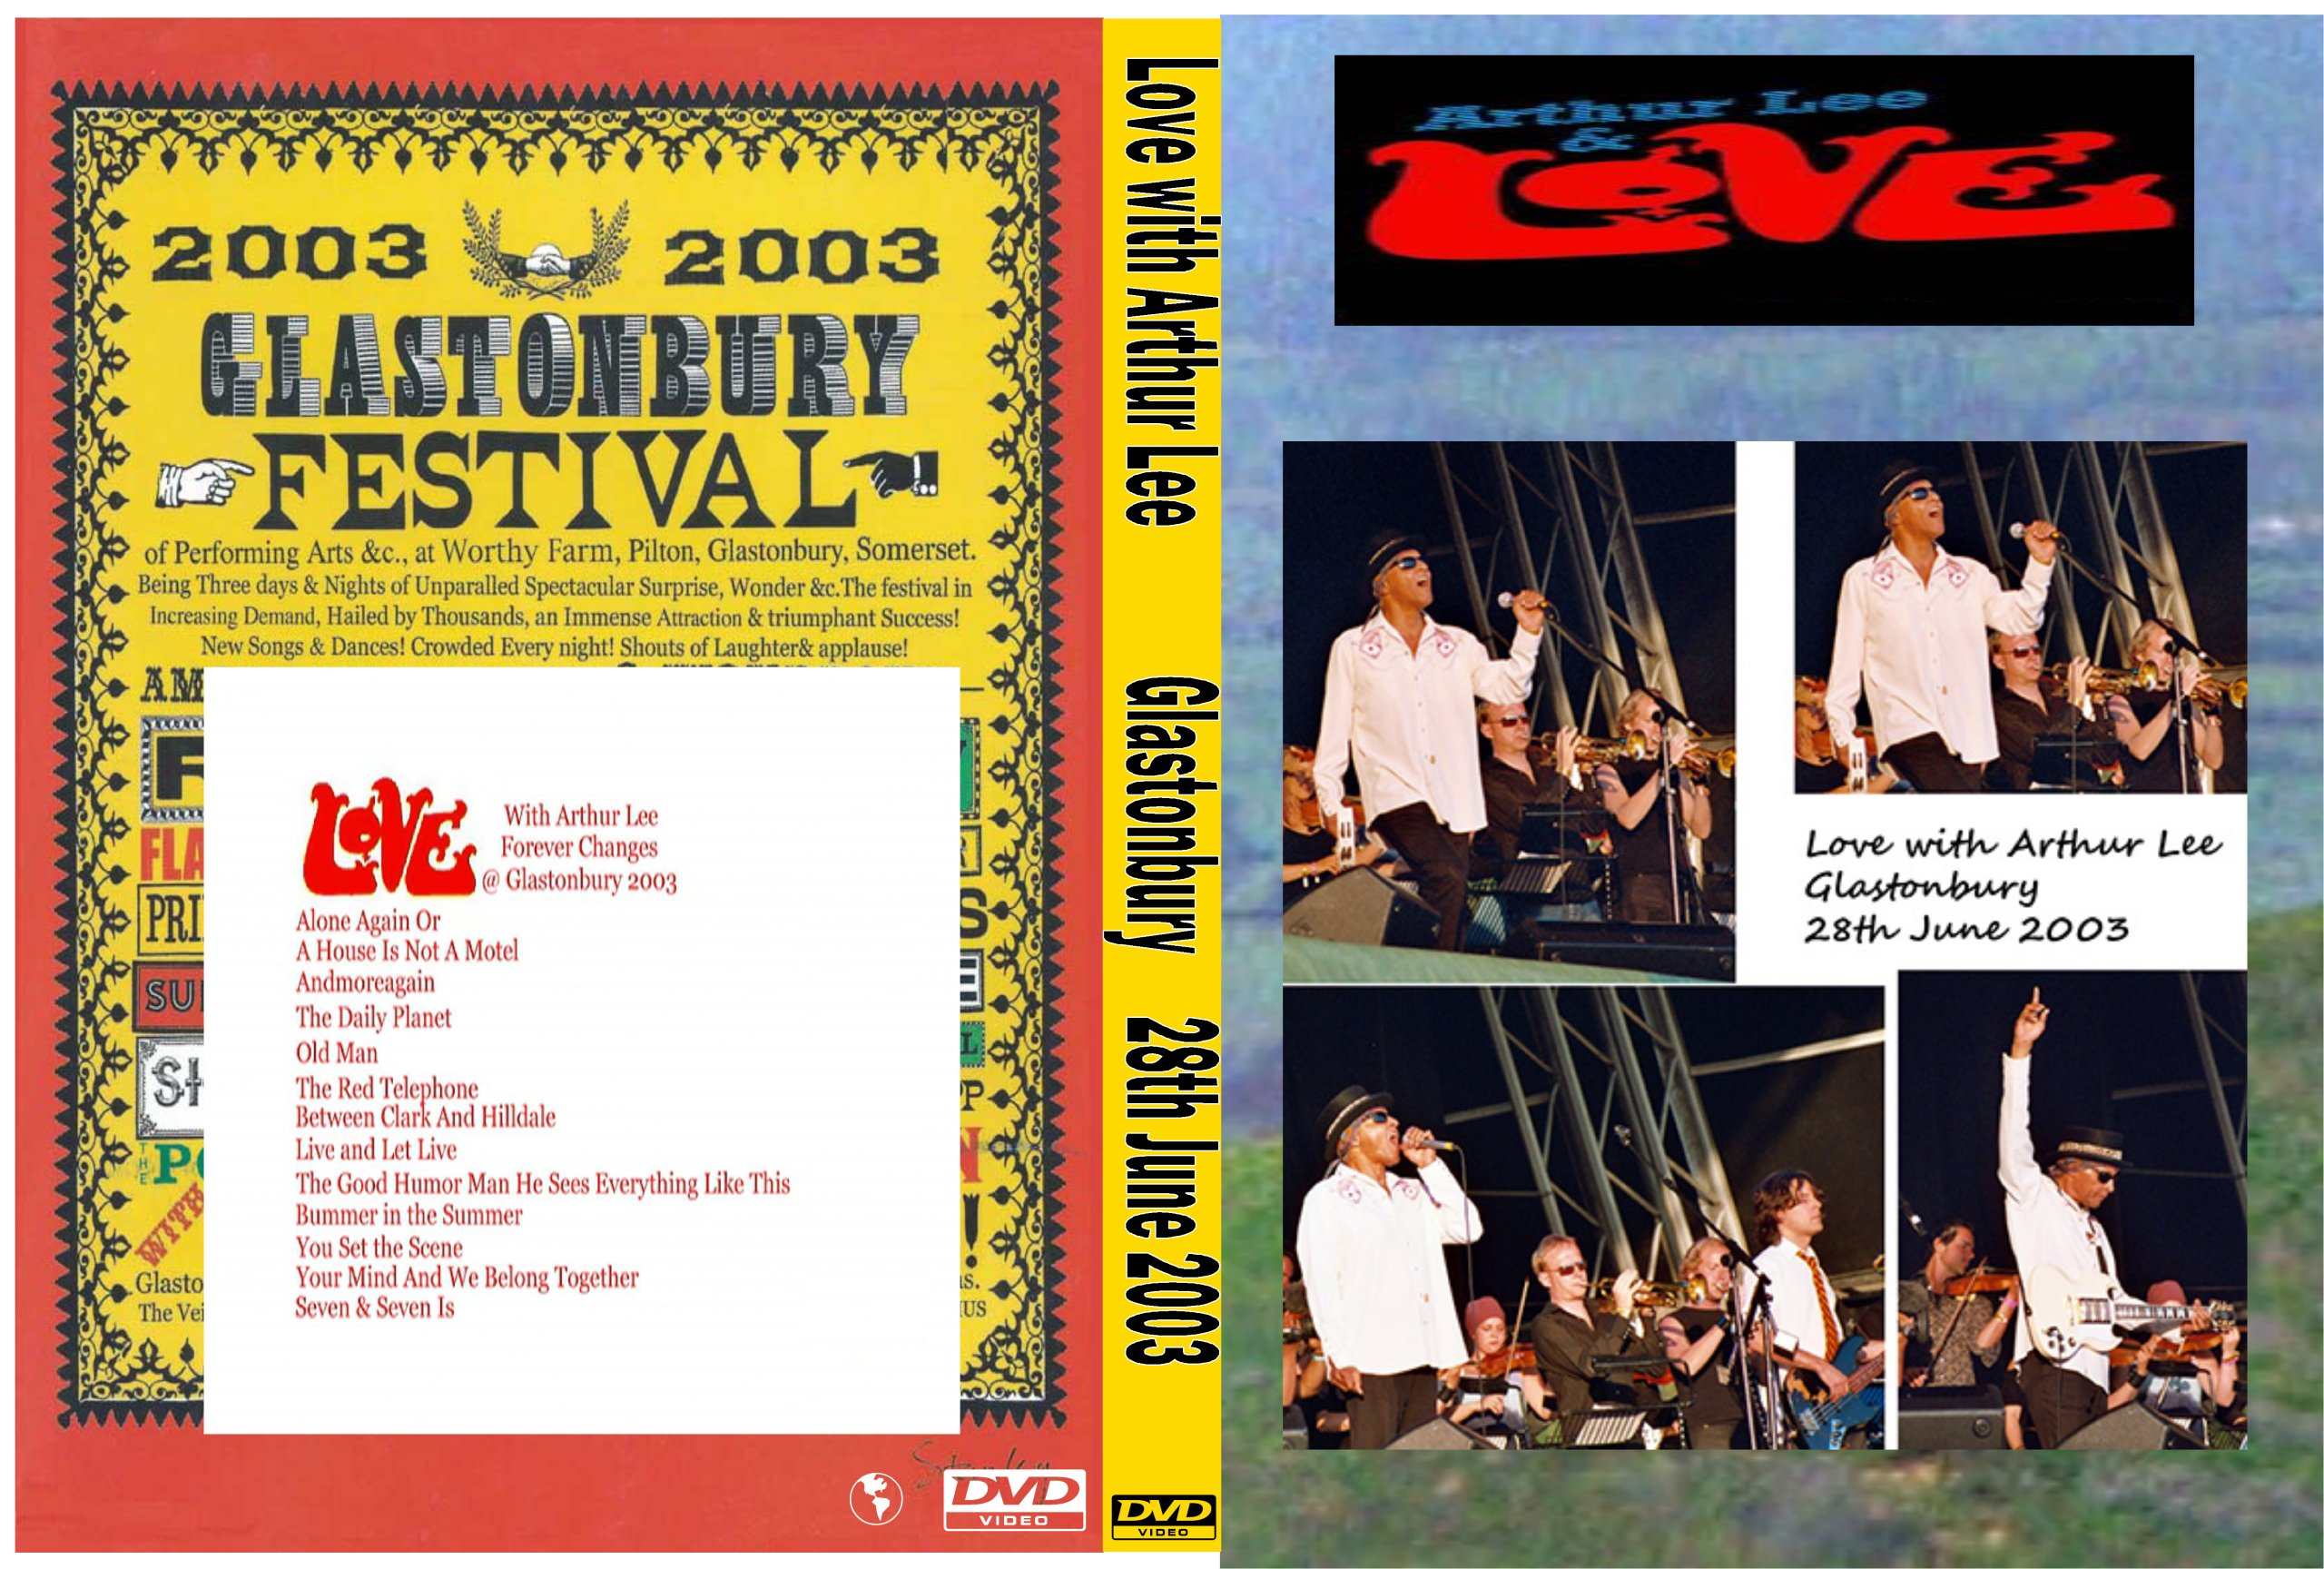 LOVE WITH ARTHUR LEE GLASTONBURY 2003 (1 DVD) - 7391983008